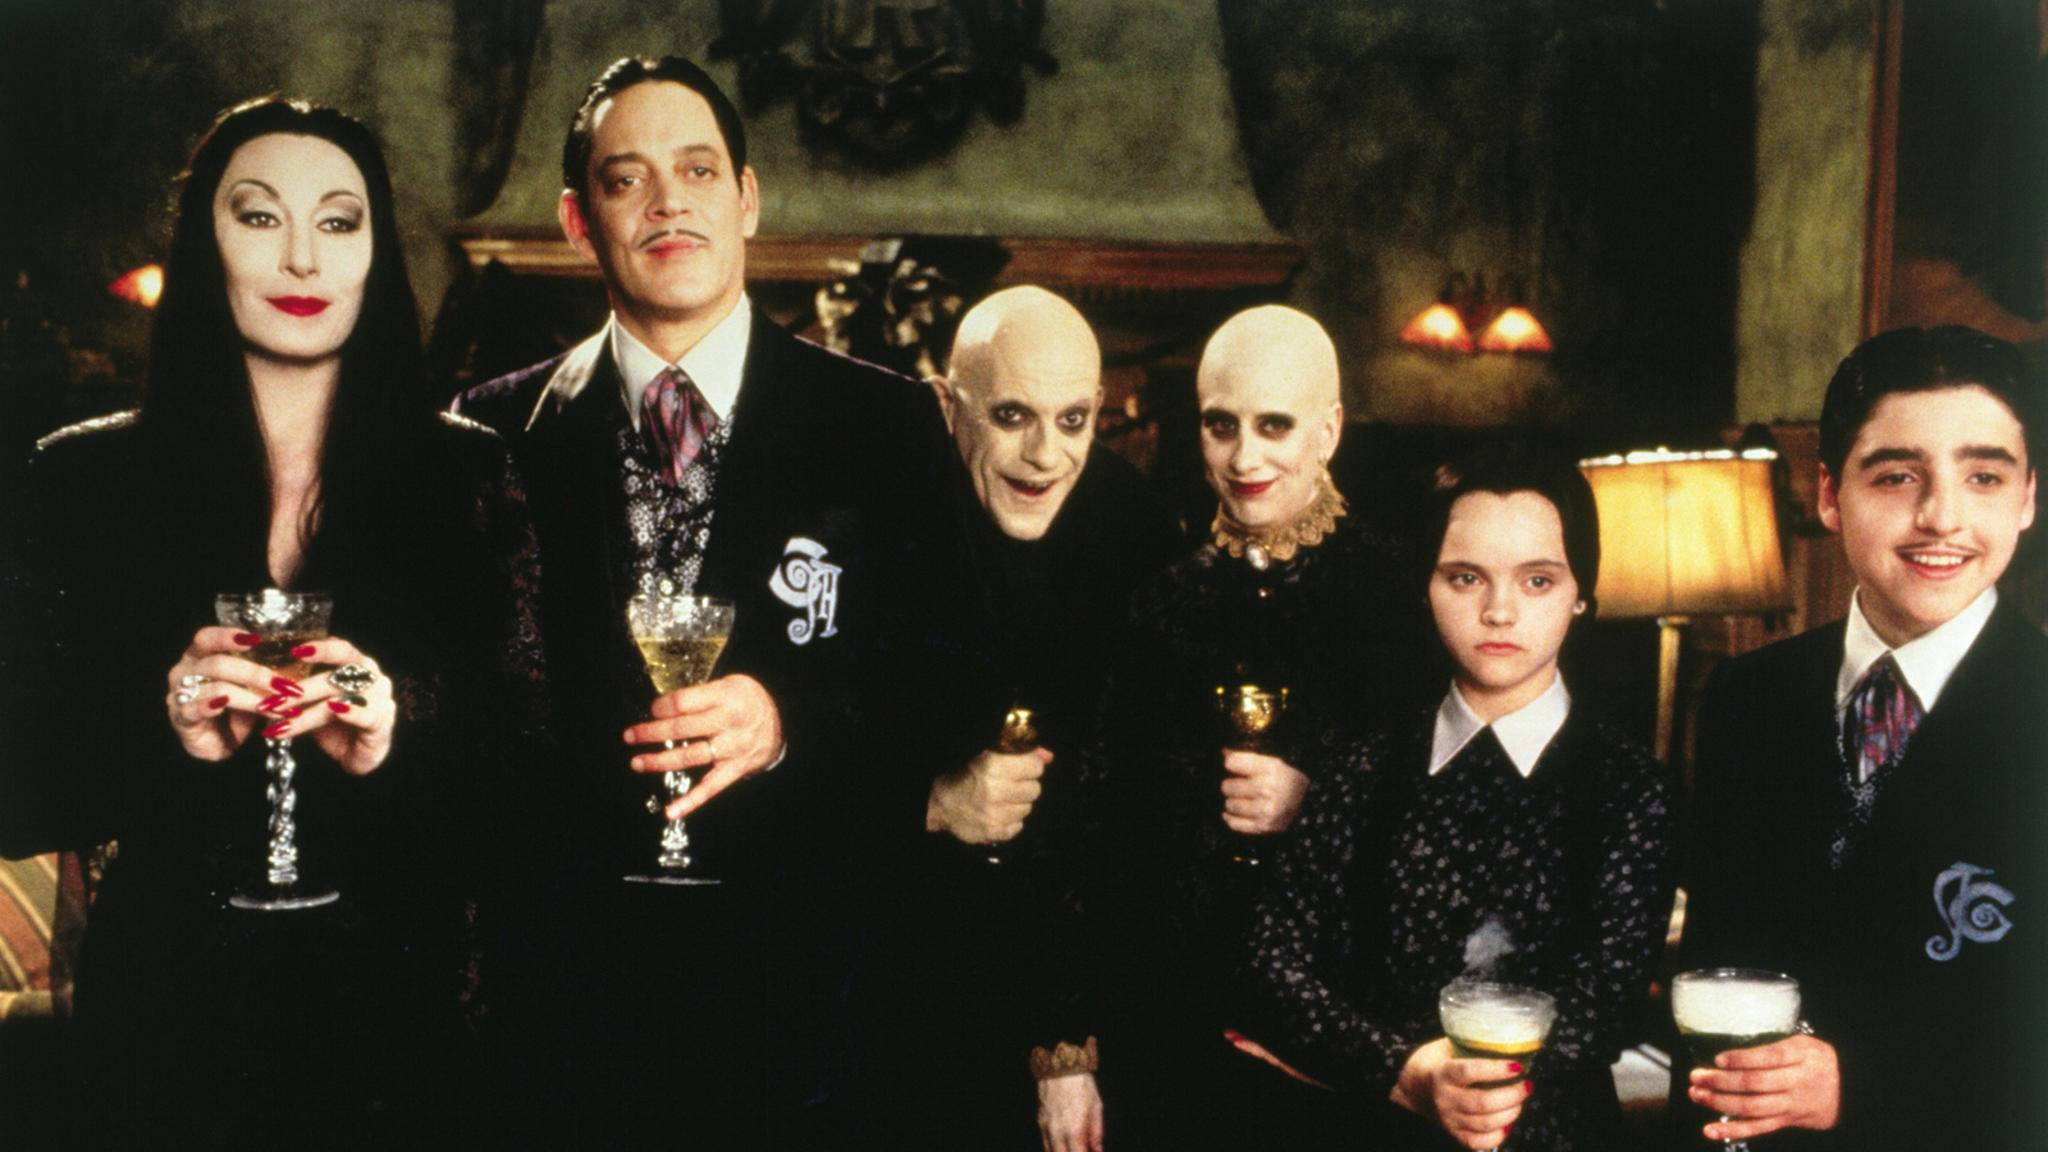 addams family in verrückter tradition